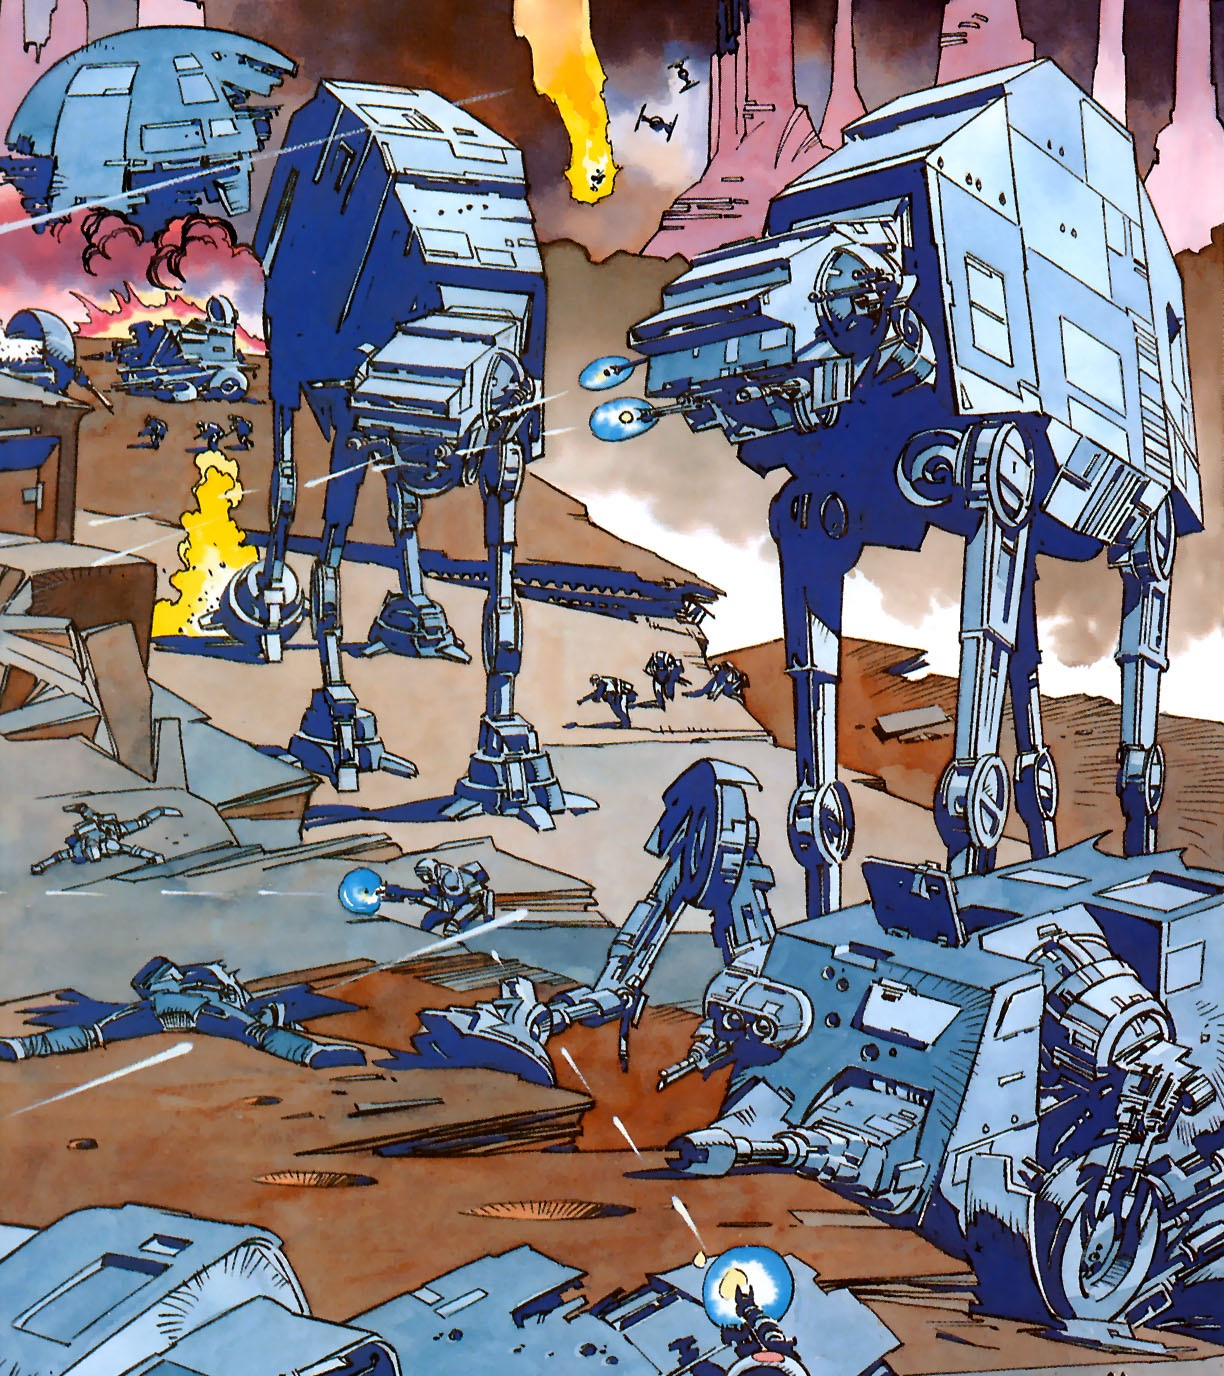 Second Battle of Coruscant